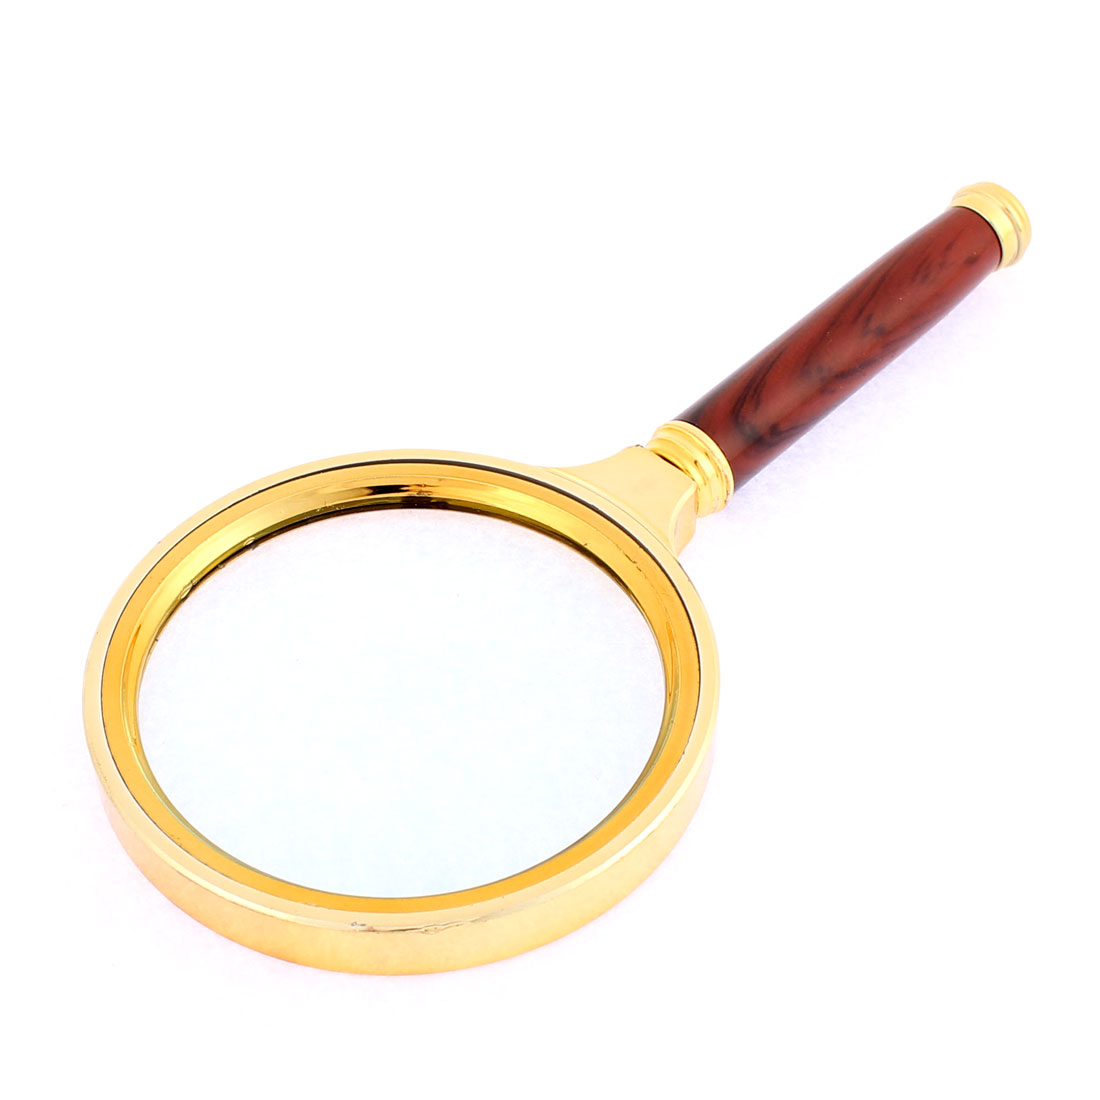 Handheld Metal Frame 5X Magnifier Magnifying Glass Jewelry Loupe 80mm Dia